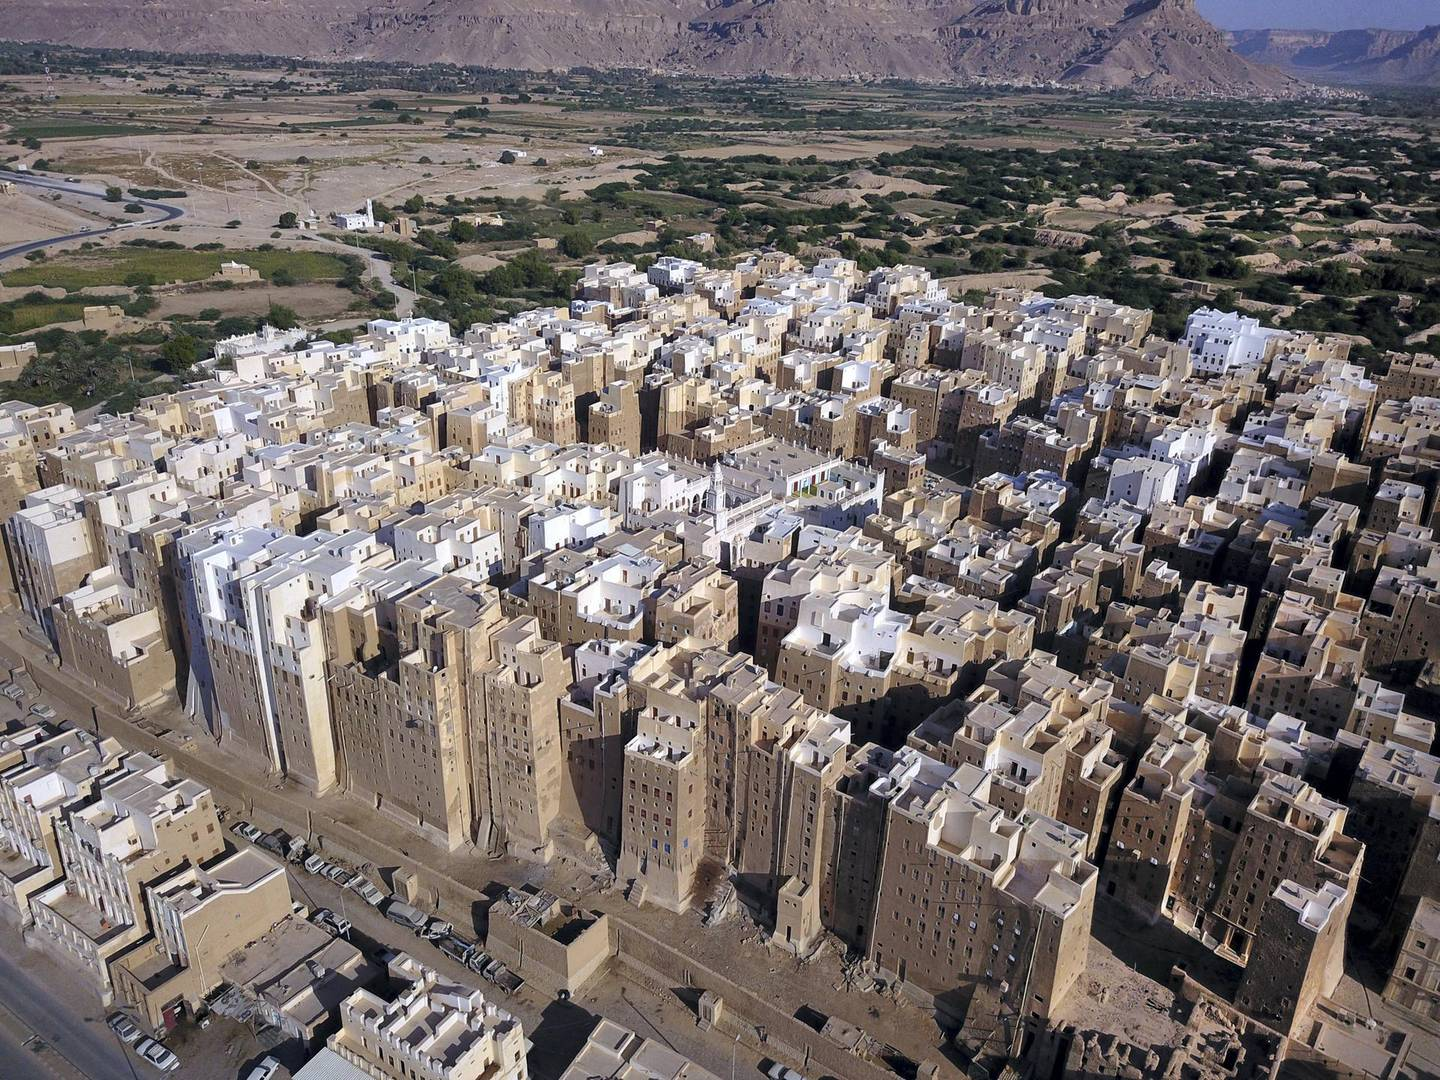 An aerial picture taken on October 17, 2020, shows a view of Shibam City in Yemen's central Hadramawt governorate. - Against the backdrop of what resembles the Grand Canyon stands Yemen's ancient city of Shibam, the 'Manhattan of the desert' that has largely been spared by war but remains at the mercy of natural disasters. (Photo by - / AFP)